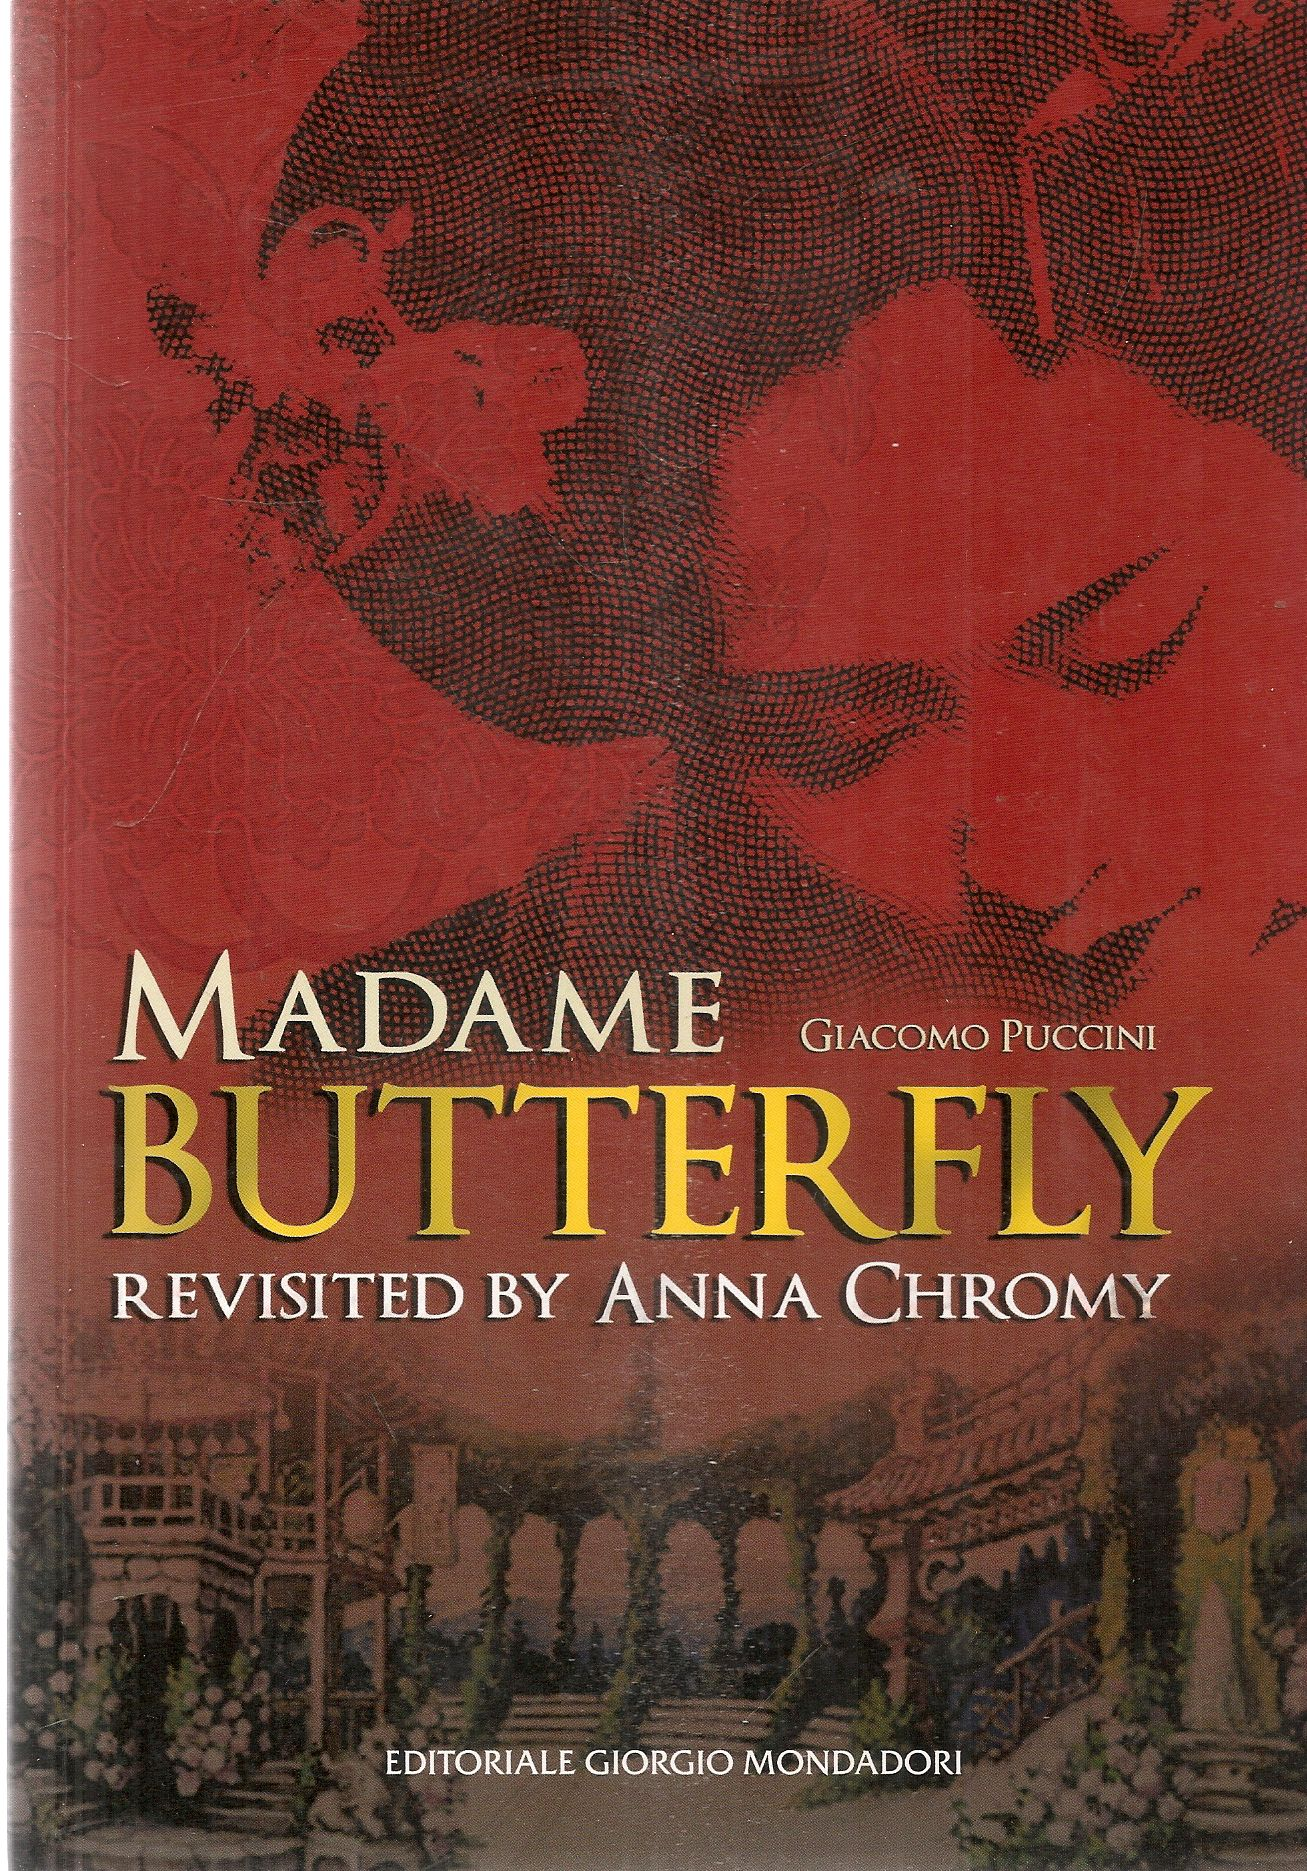 GIACOMO PUCCINI - MADAME BUTTERFLY - RIVISITED BY ANNA CHROMY